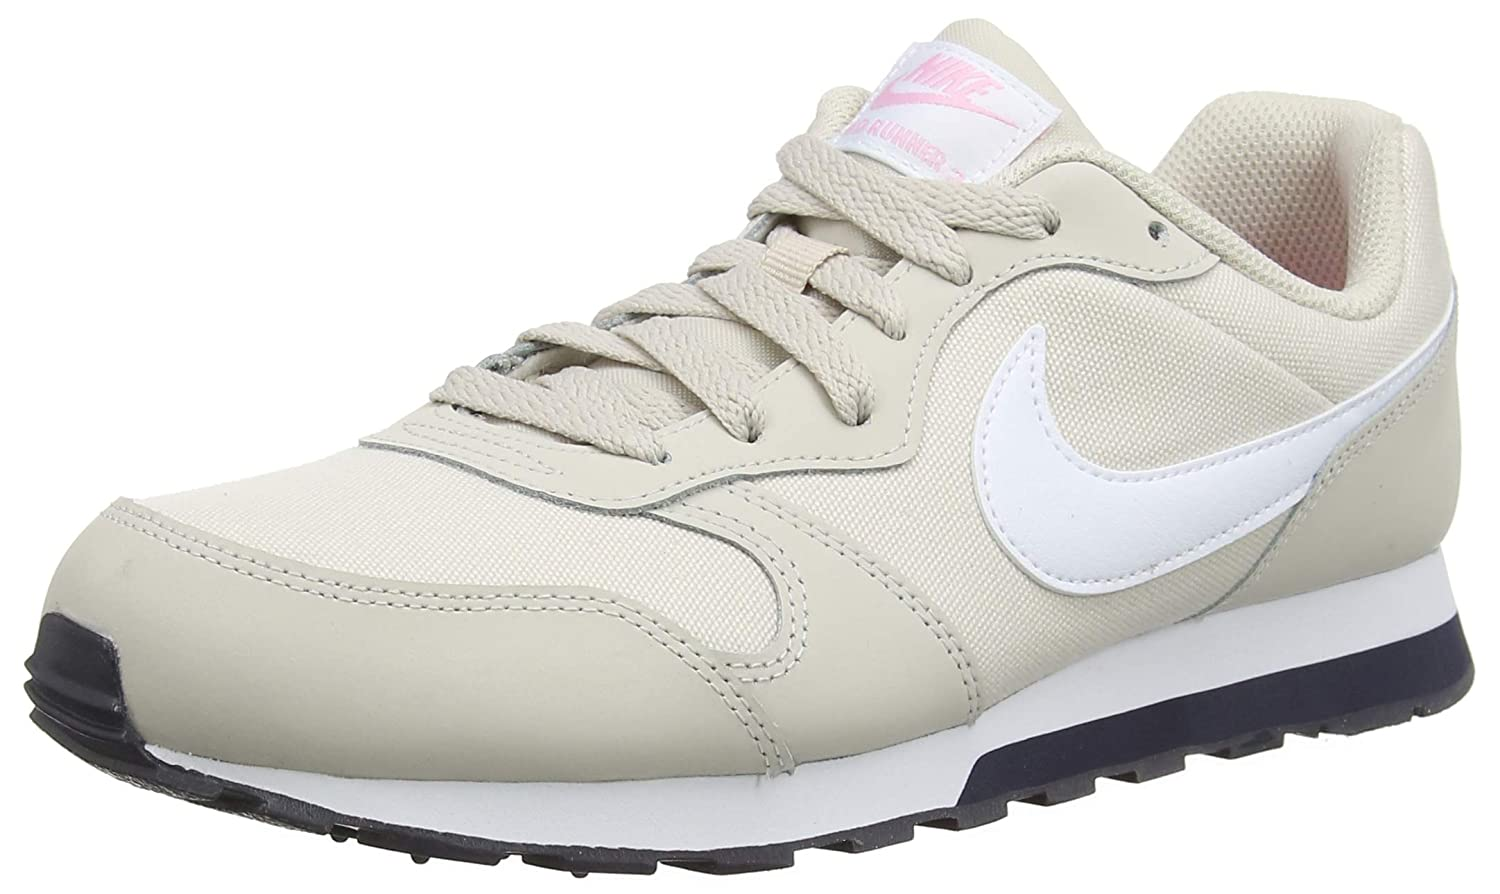 NIKE MD Runner 2 19947 GS, MD Chaussures 2 de Fitness Fille Multicolore (Desert Sand/White/Pink/Gridiron 001) cc16642 - shopssong.space